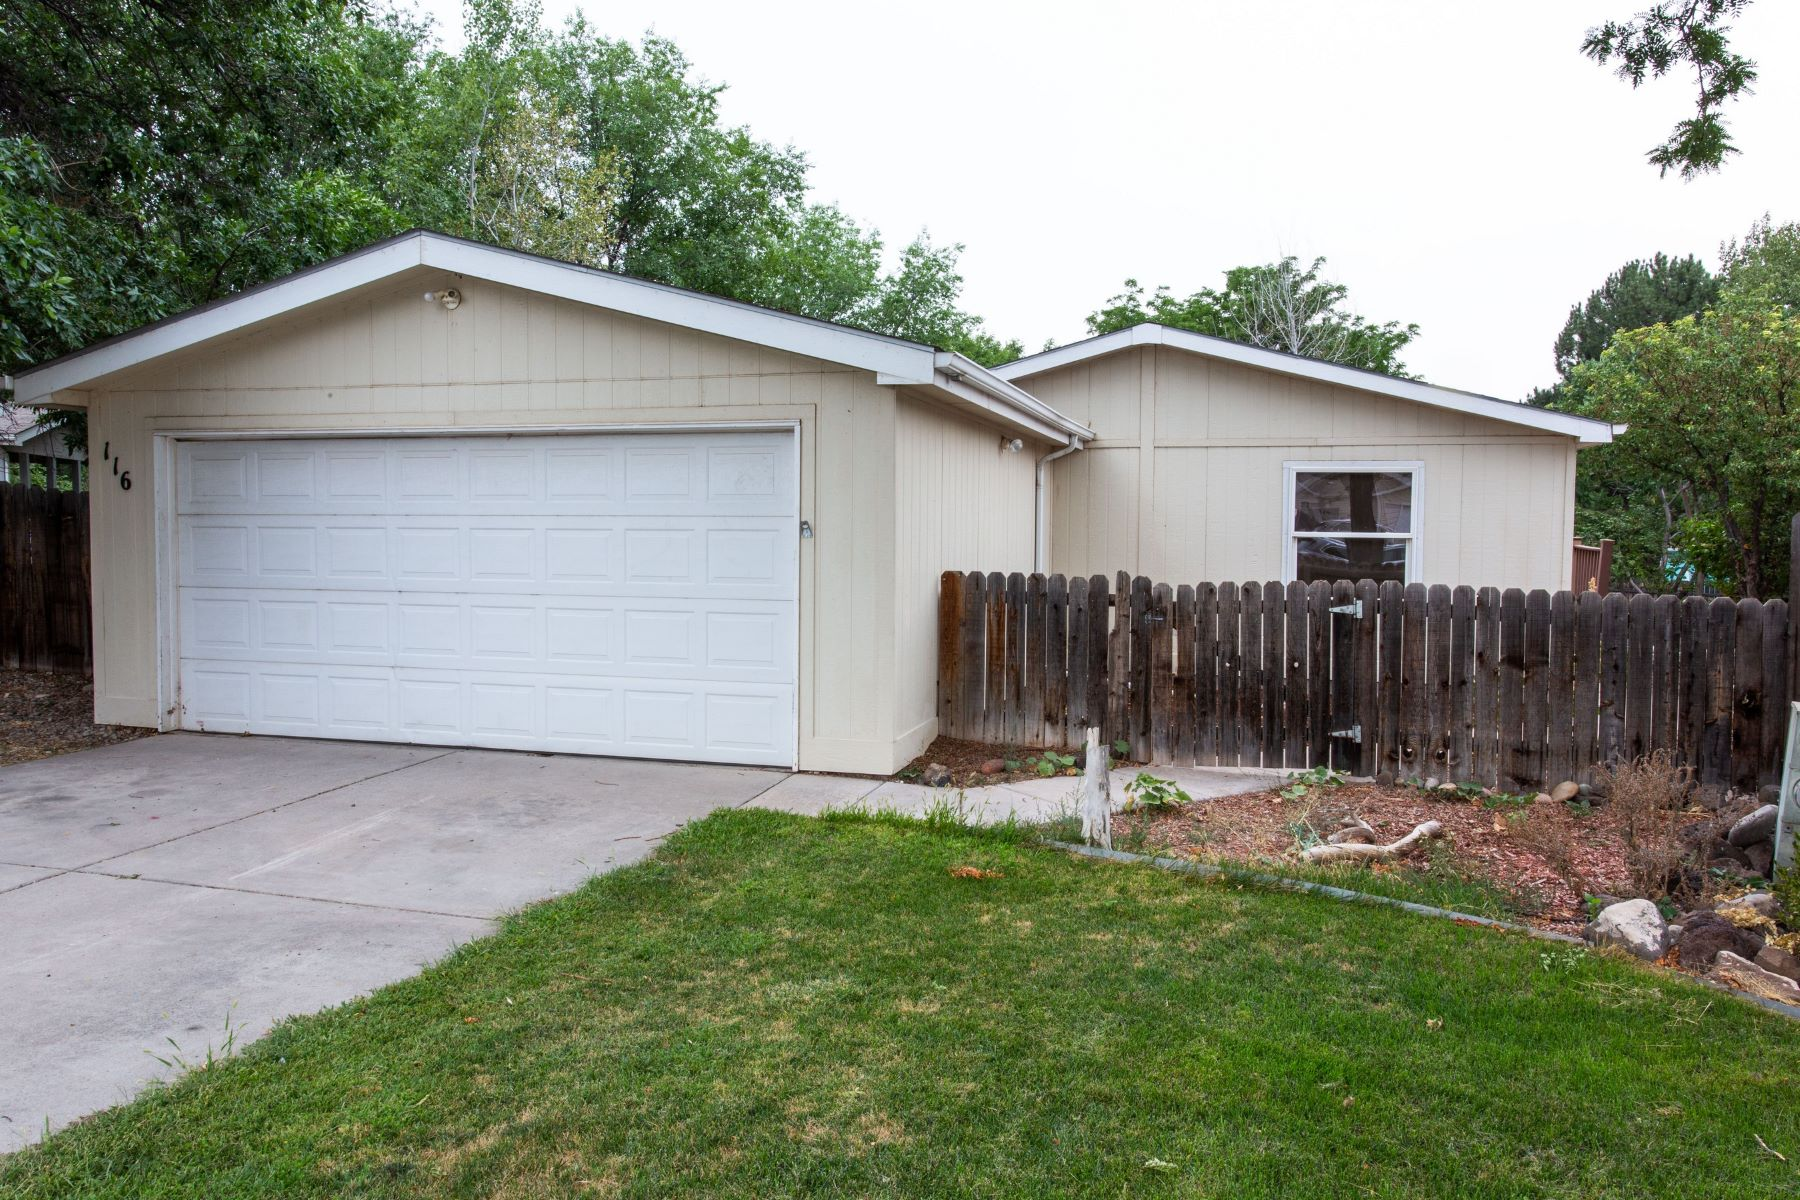 Single Family Home for Active at Move-In Ready Single Family Home 116 Queen City Circle Parachute, Colorado 81635 United States